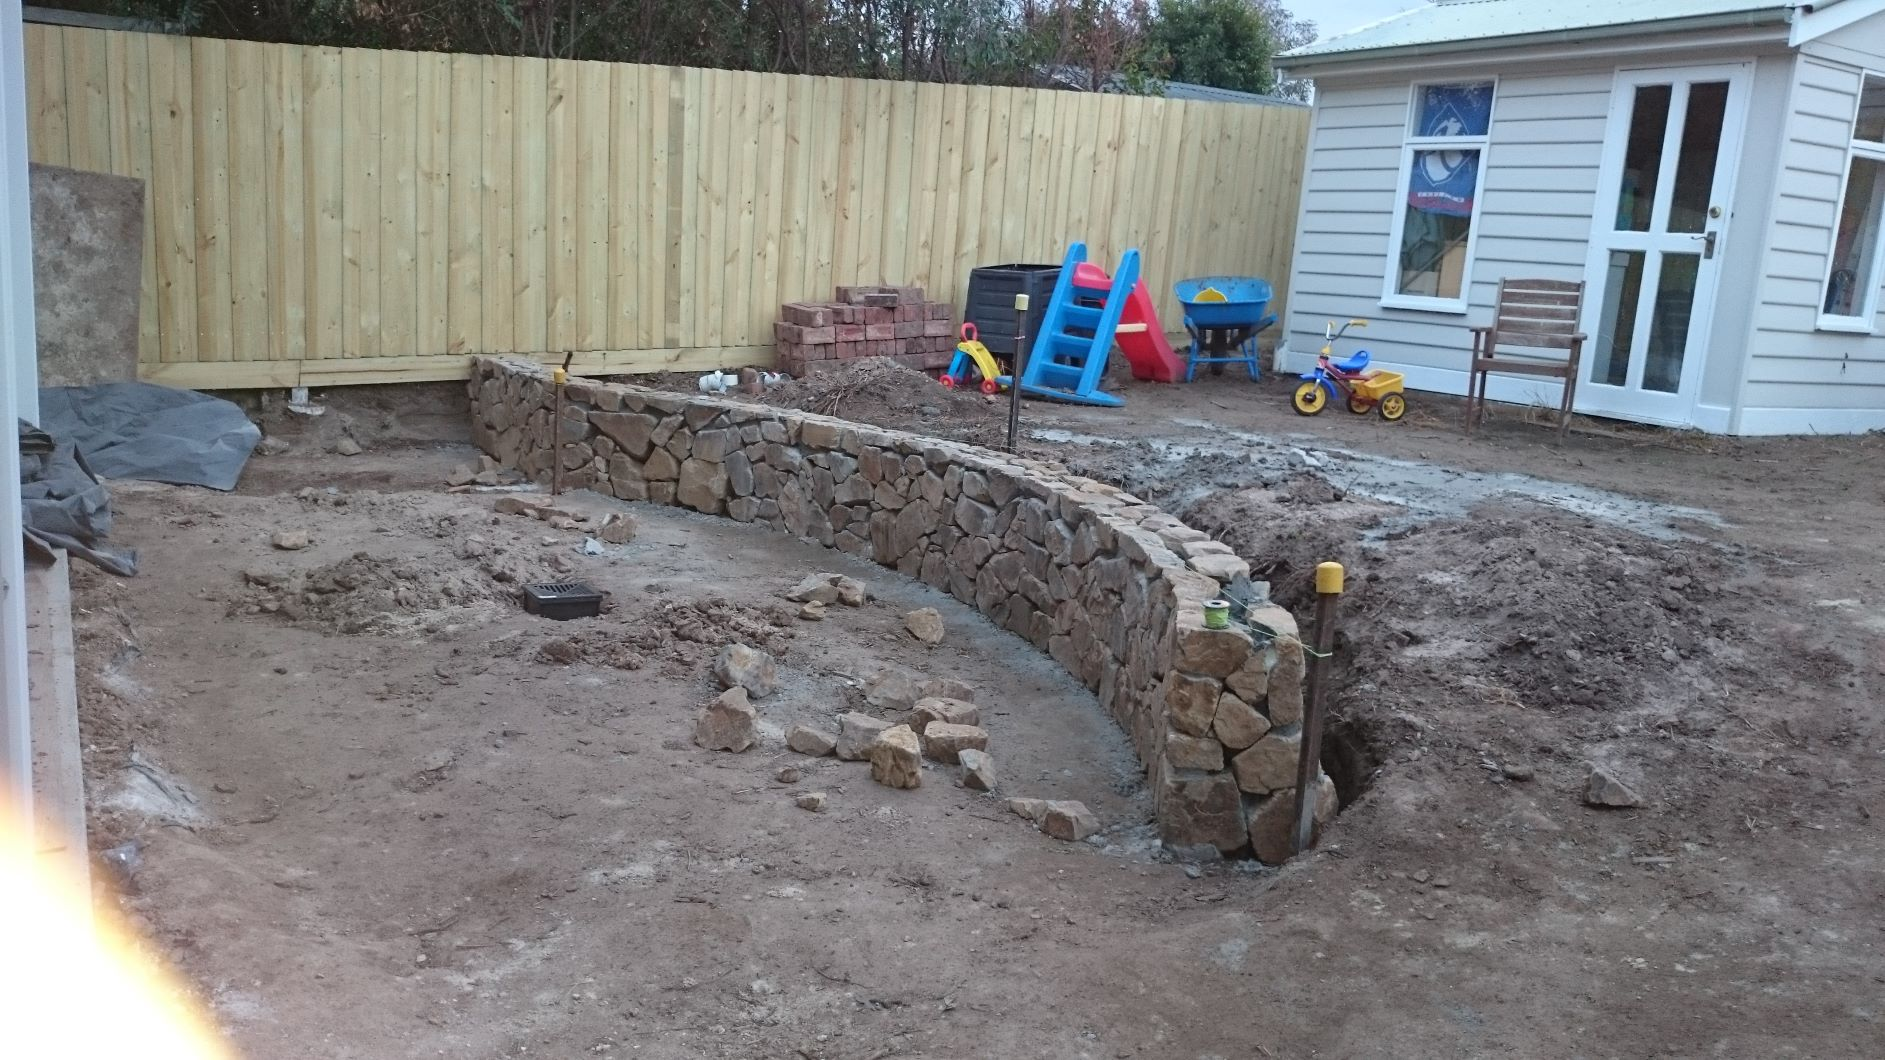 Reservior back garden, Coldstream stone retaining wall, Curved Coldstream stone seat, Cute garde shed